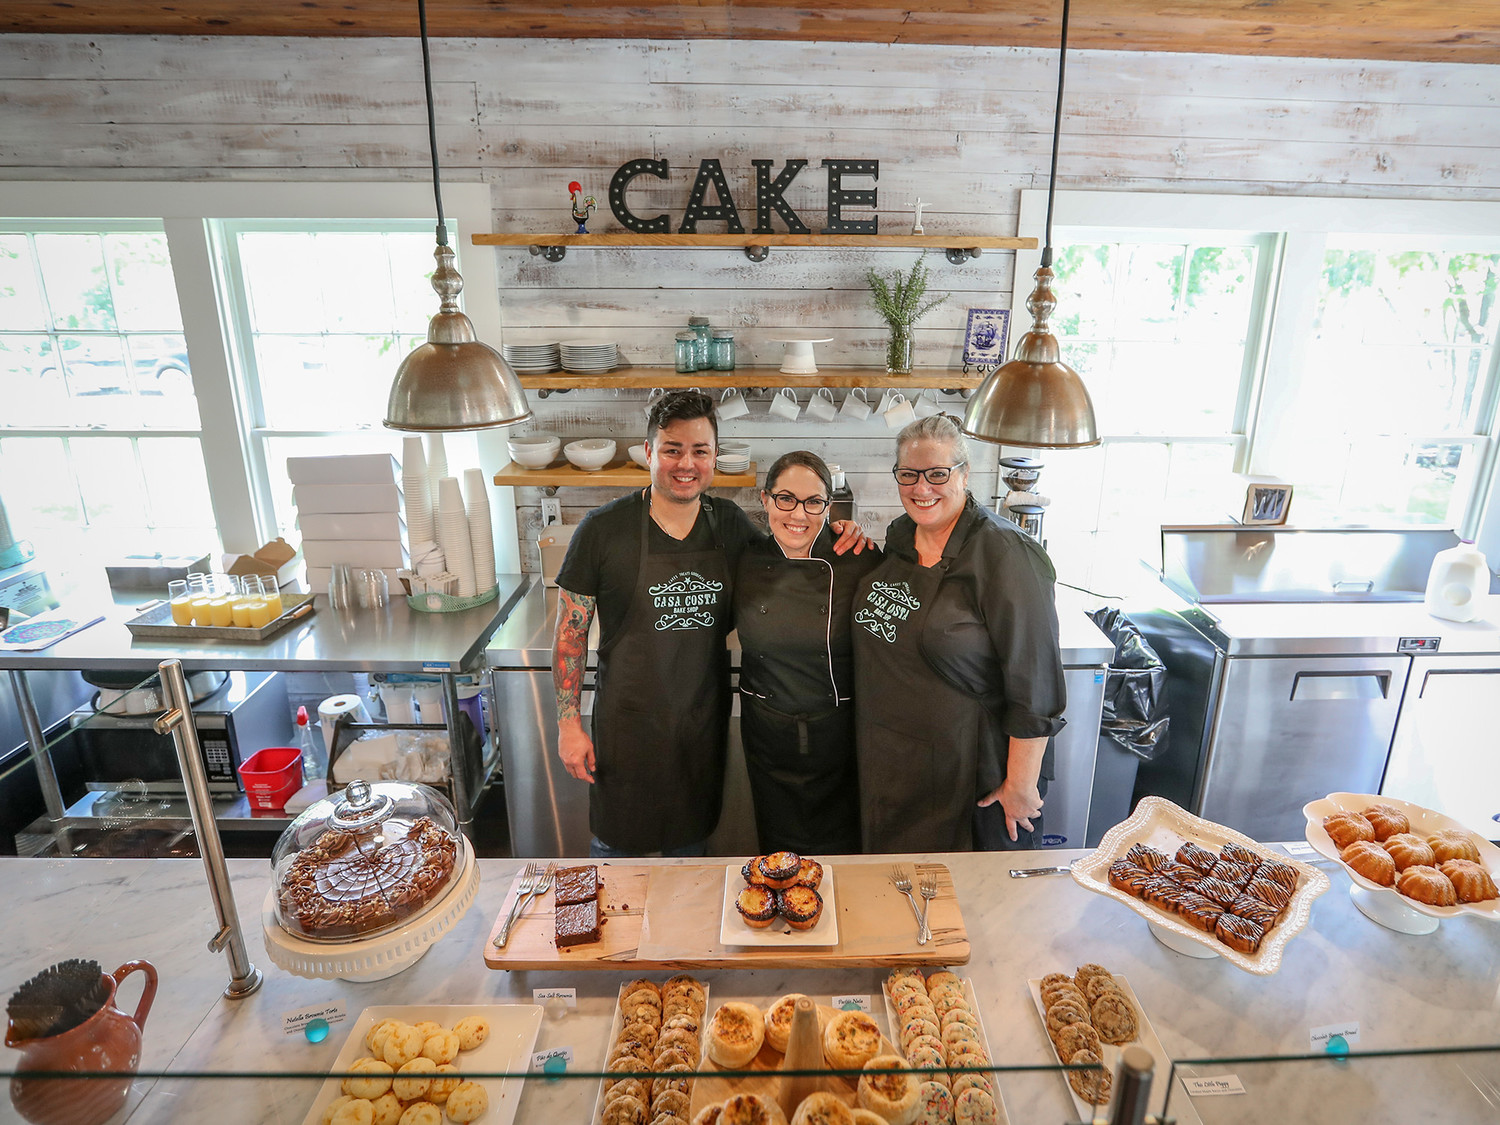 Linda Costa (center) stands among her employees during the grand opening of Casa Costa Bake Shop during their grand opening in August 2017.